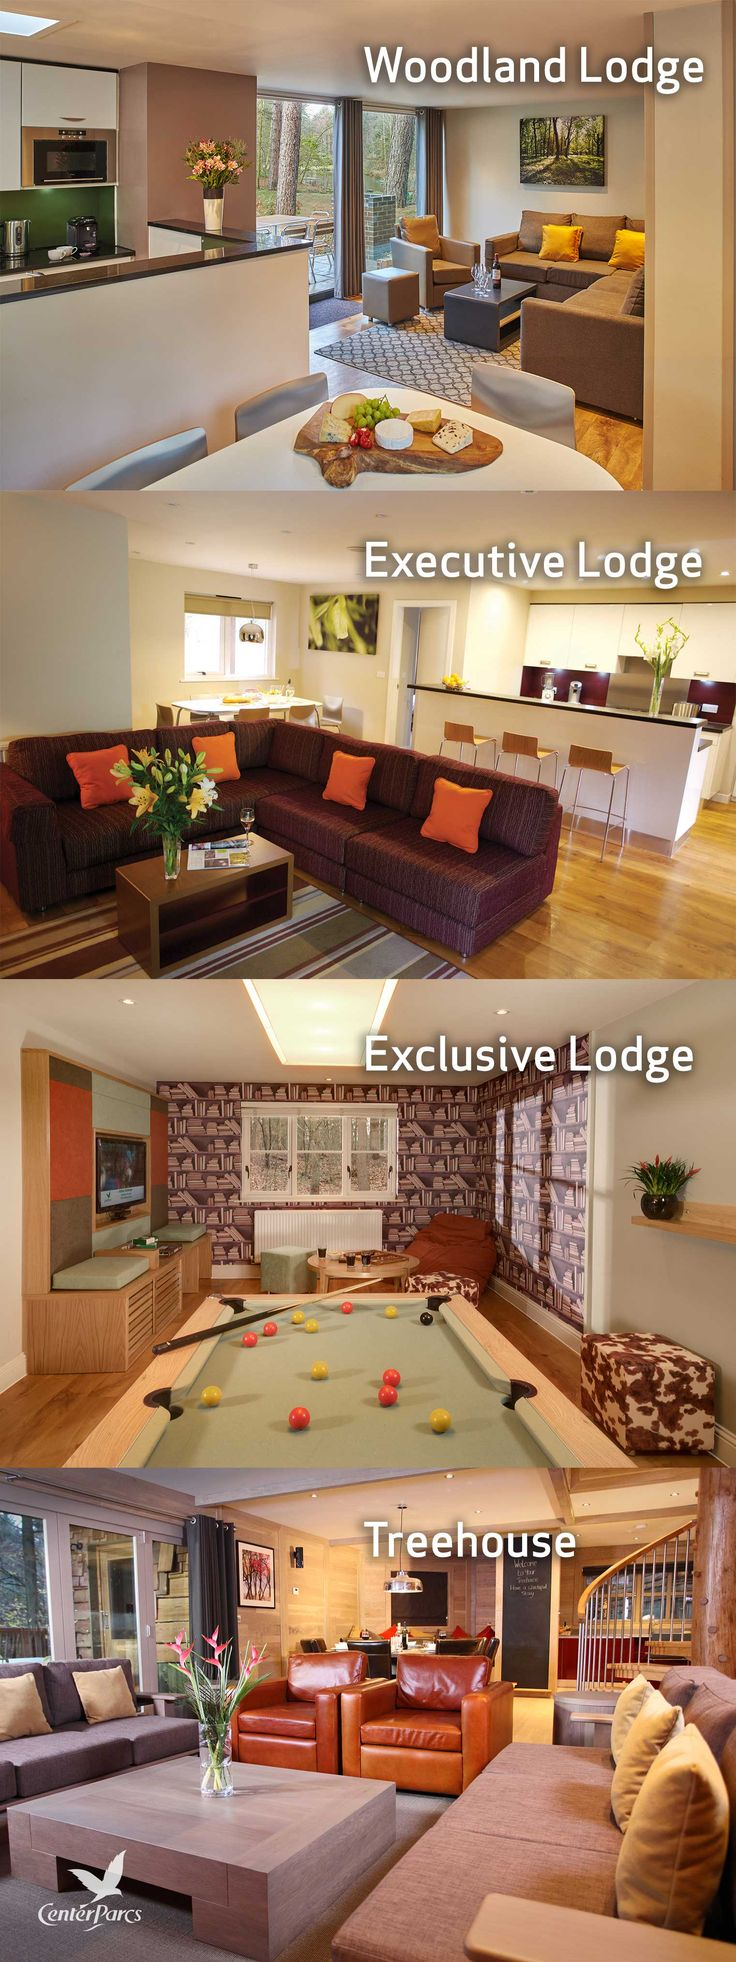 Nature is at the heart of everything we do. Our Lodges are nestled within woodland landscapes, designed to bring you closer to nature. We offer accommodation that will give you a sense of space, privacy and seclusion, ideal for the perfect lodge holiday.